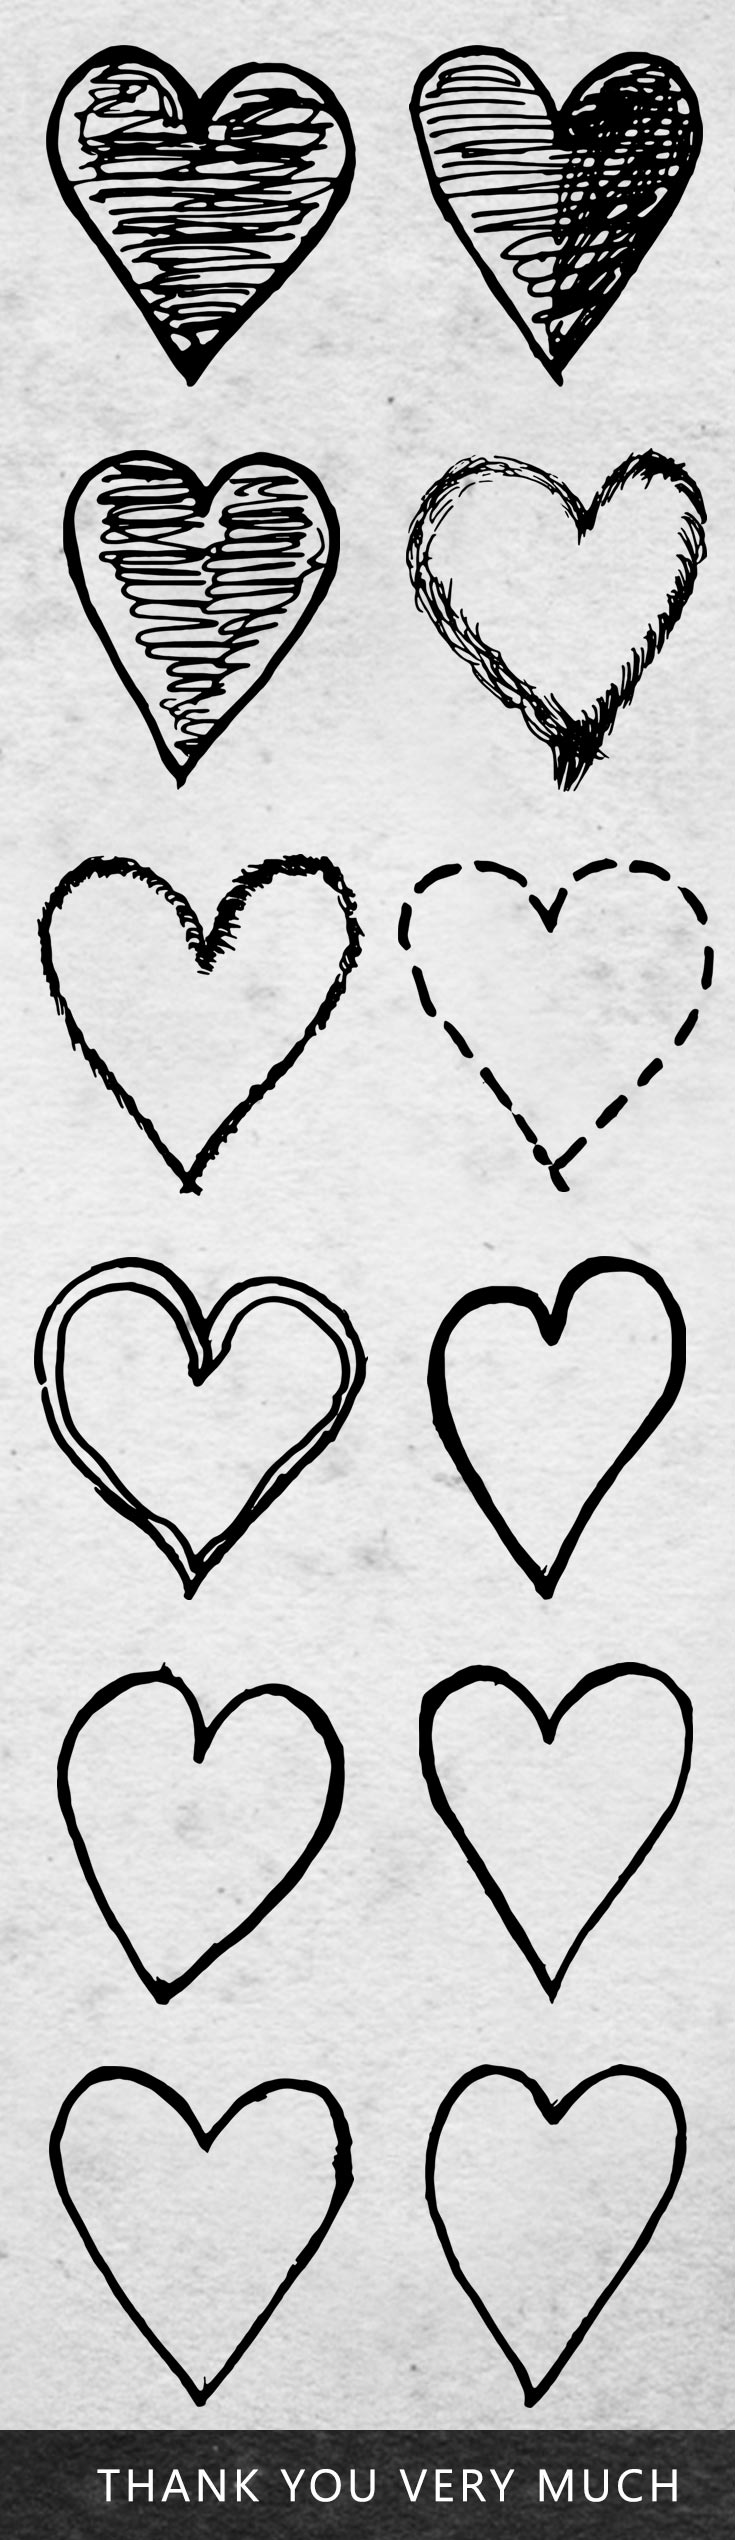 12 Free Hearts Doodle Cliparts